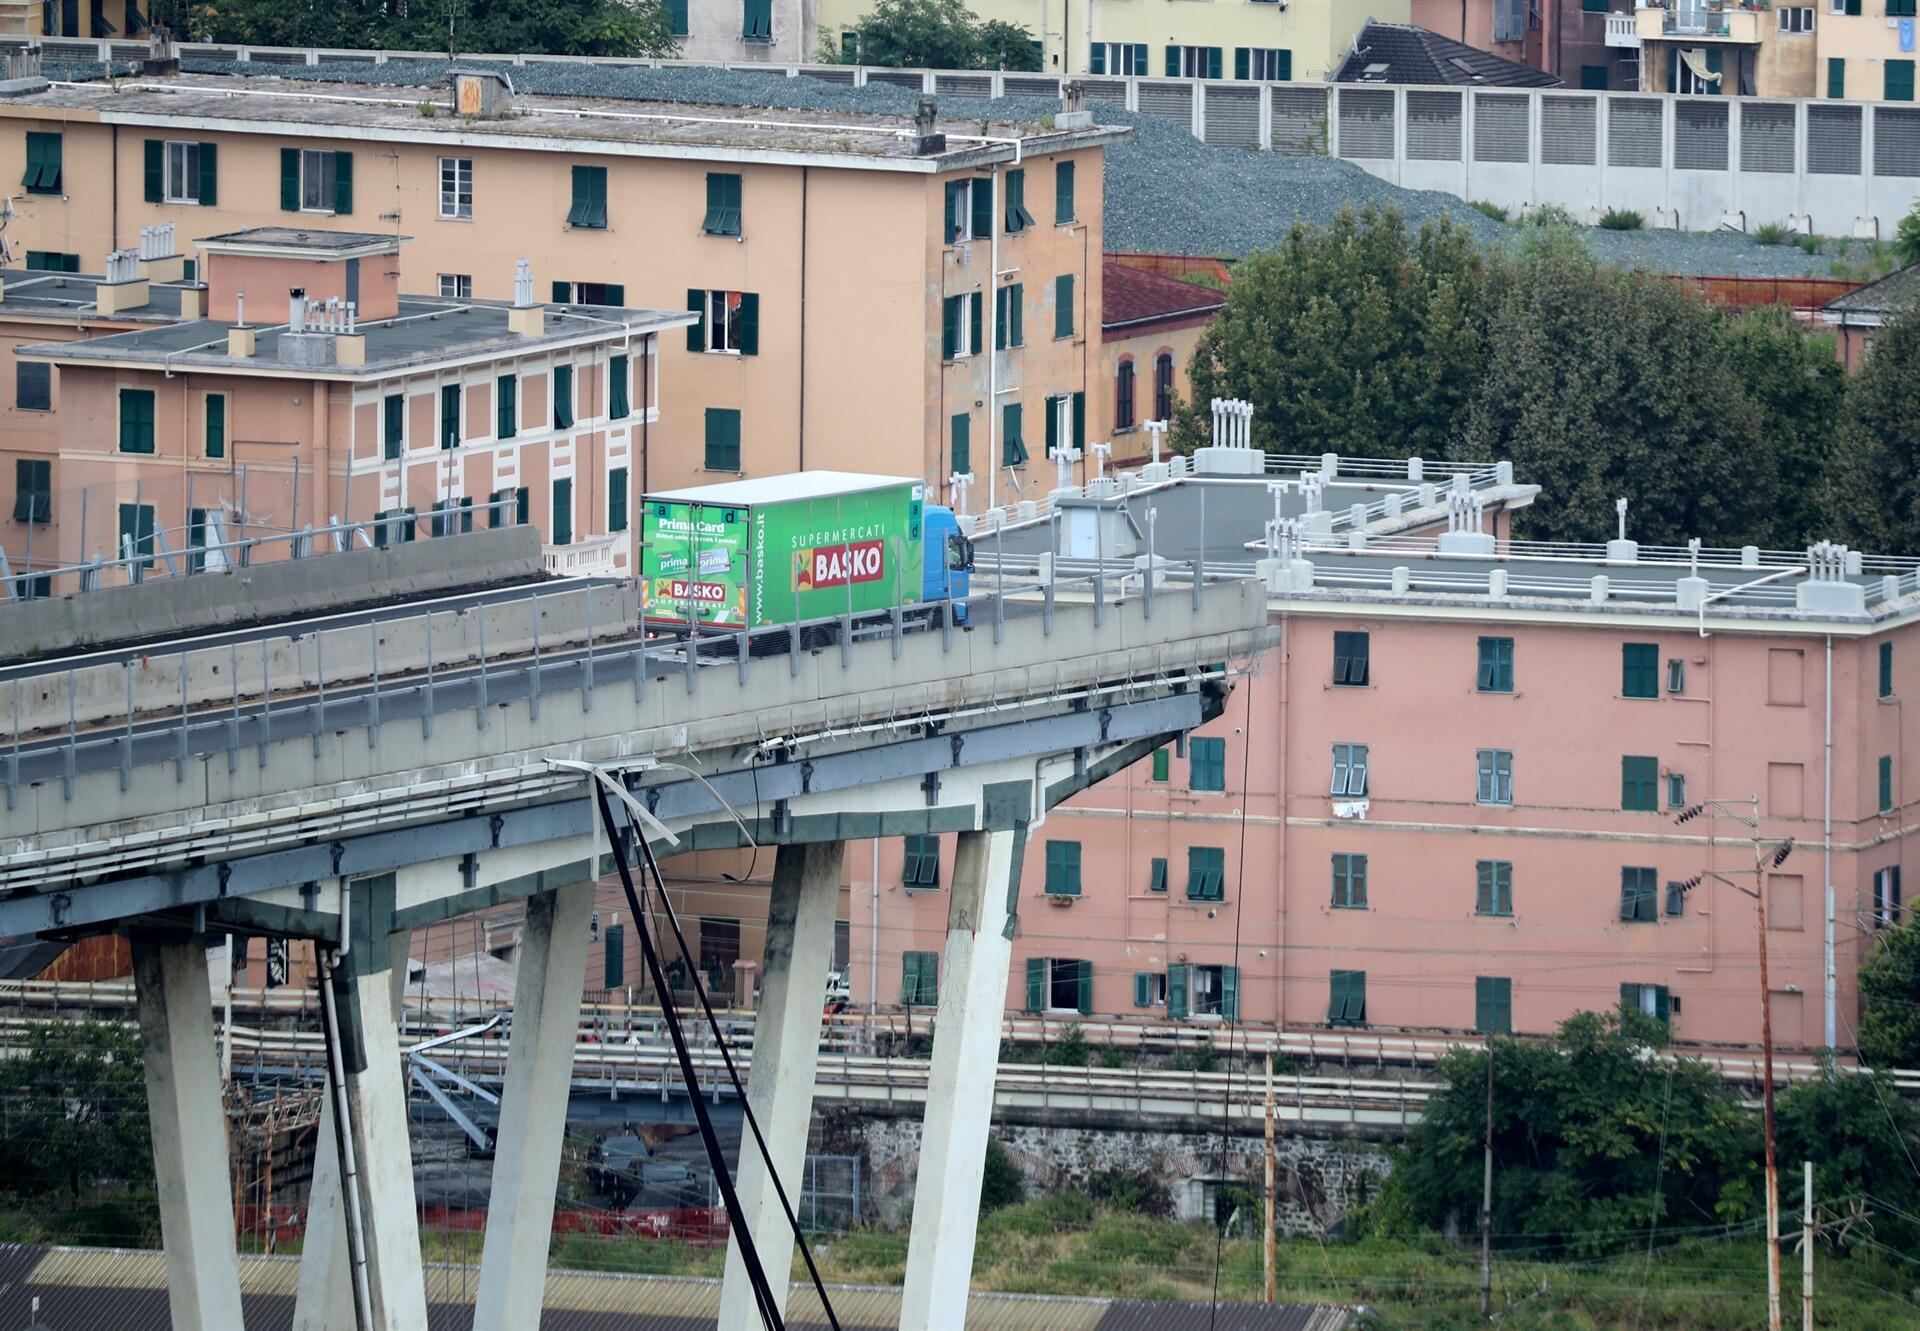 At least 30 dead in Italy motorway bridge collapse 'tragedy